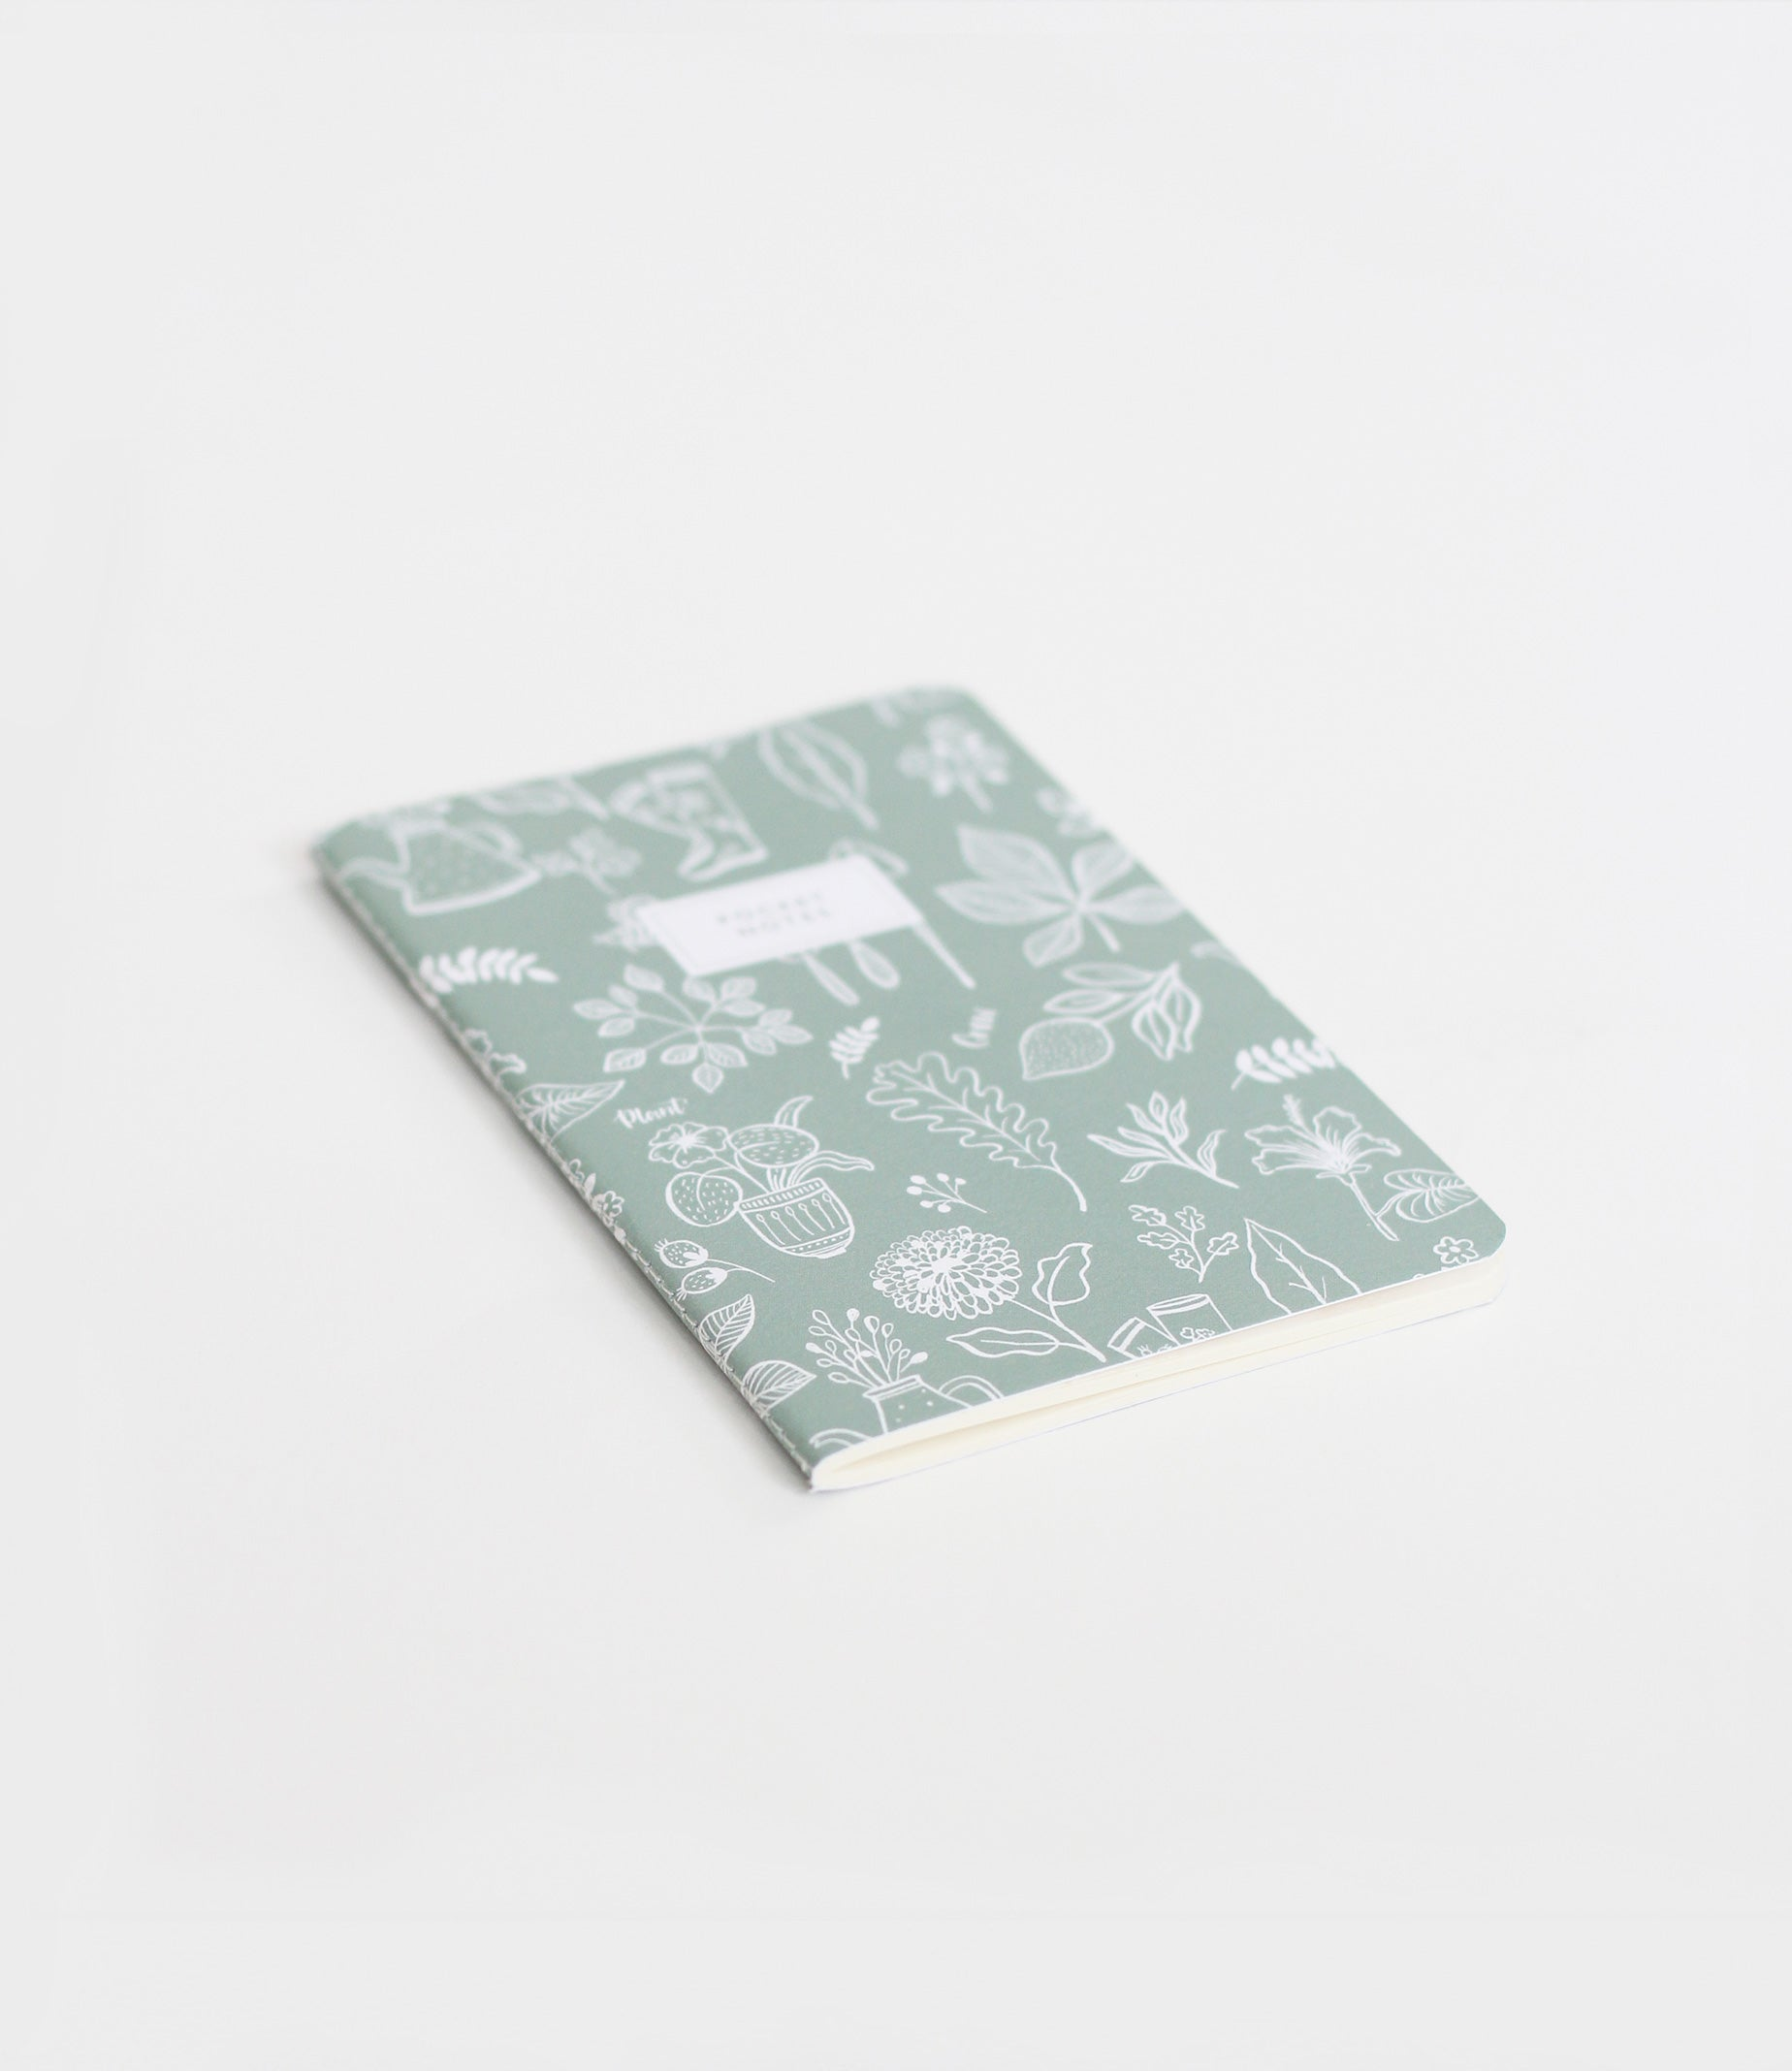 Pocket Notebooks | Foliage